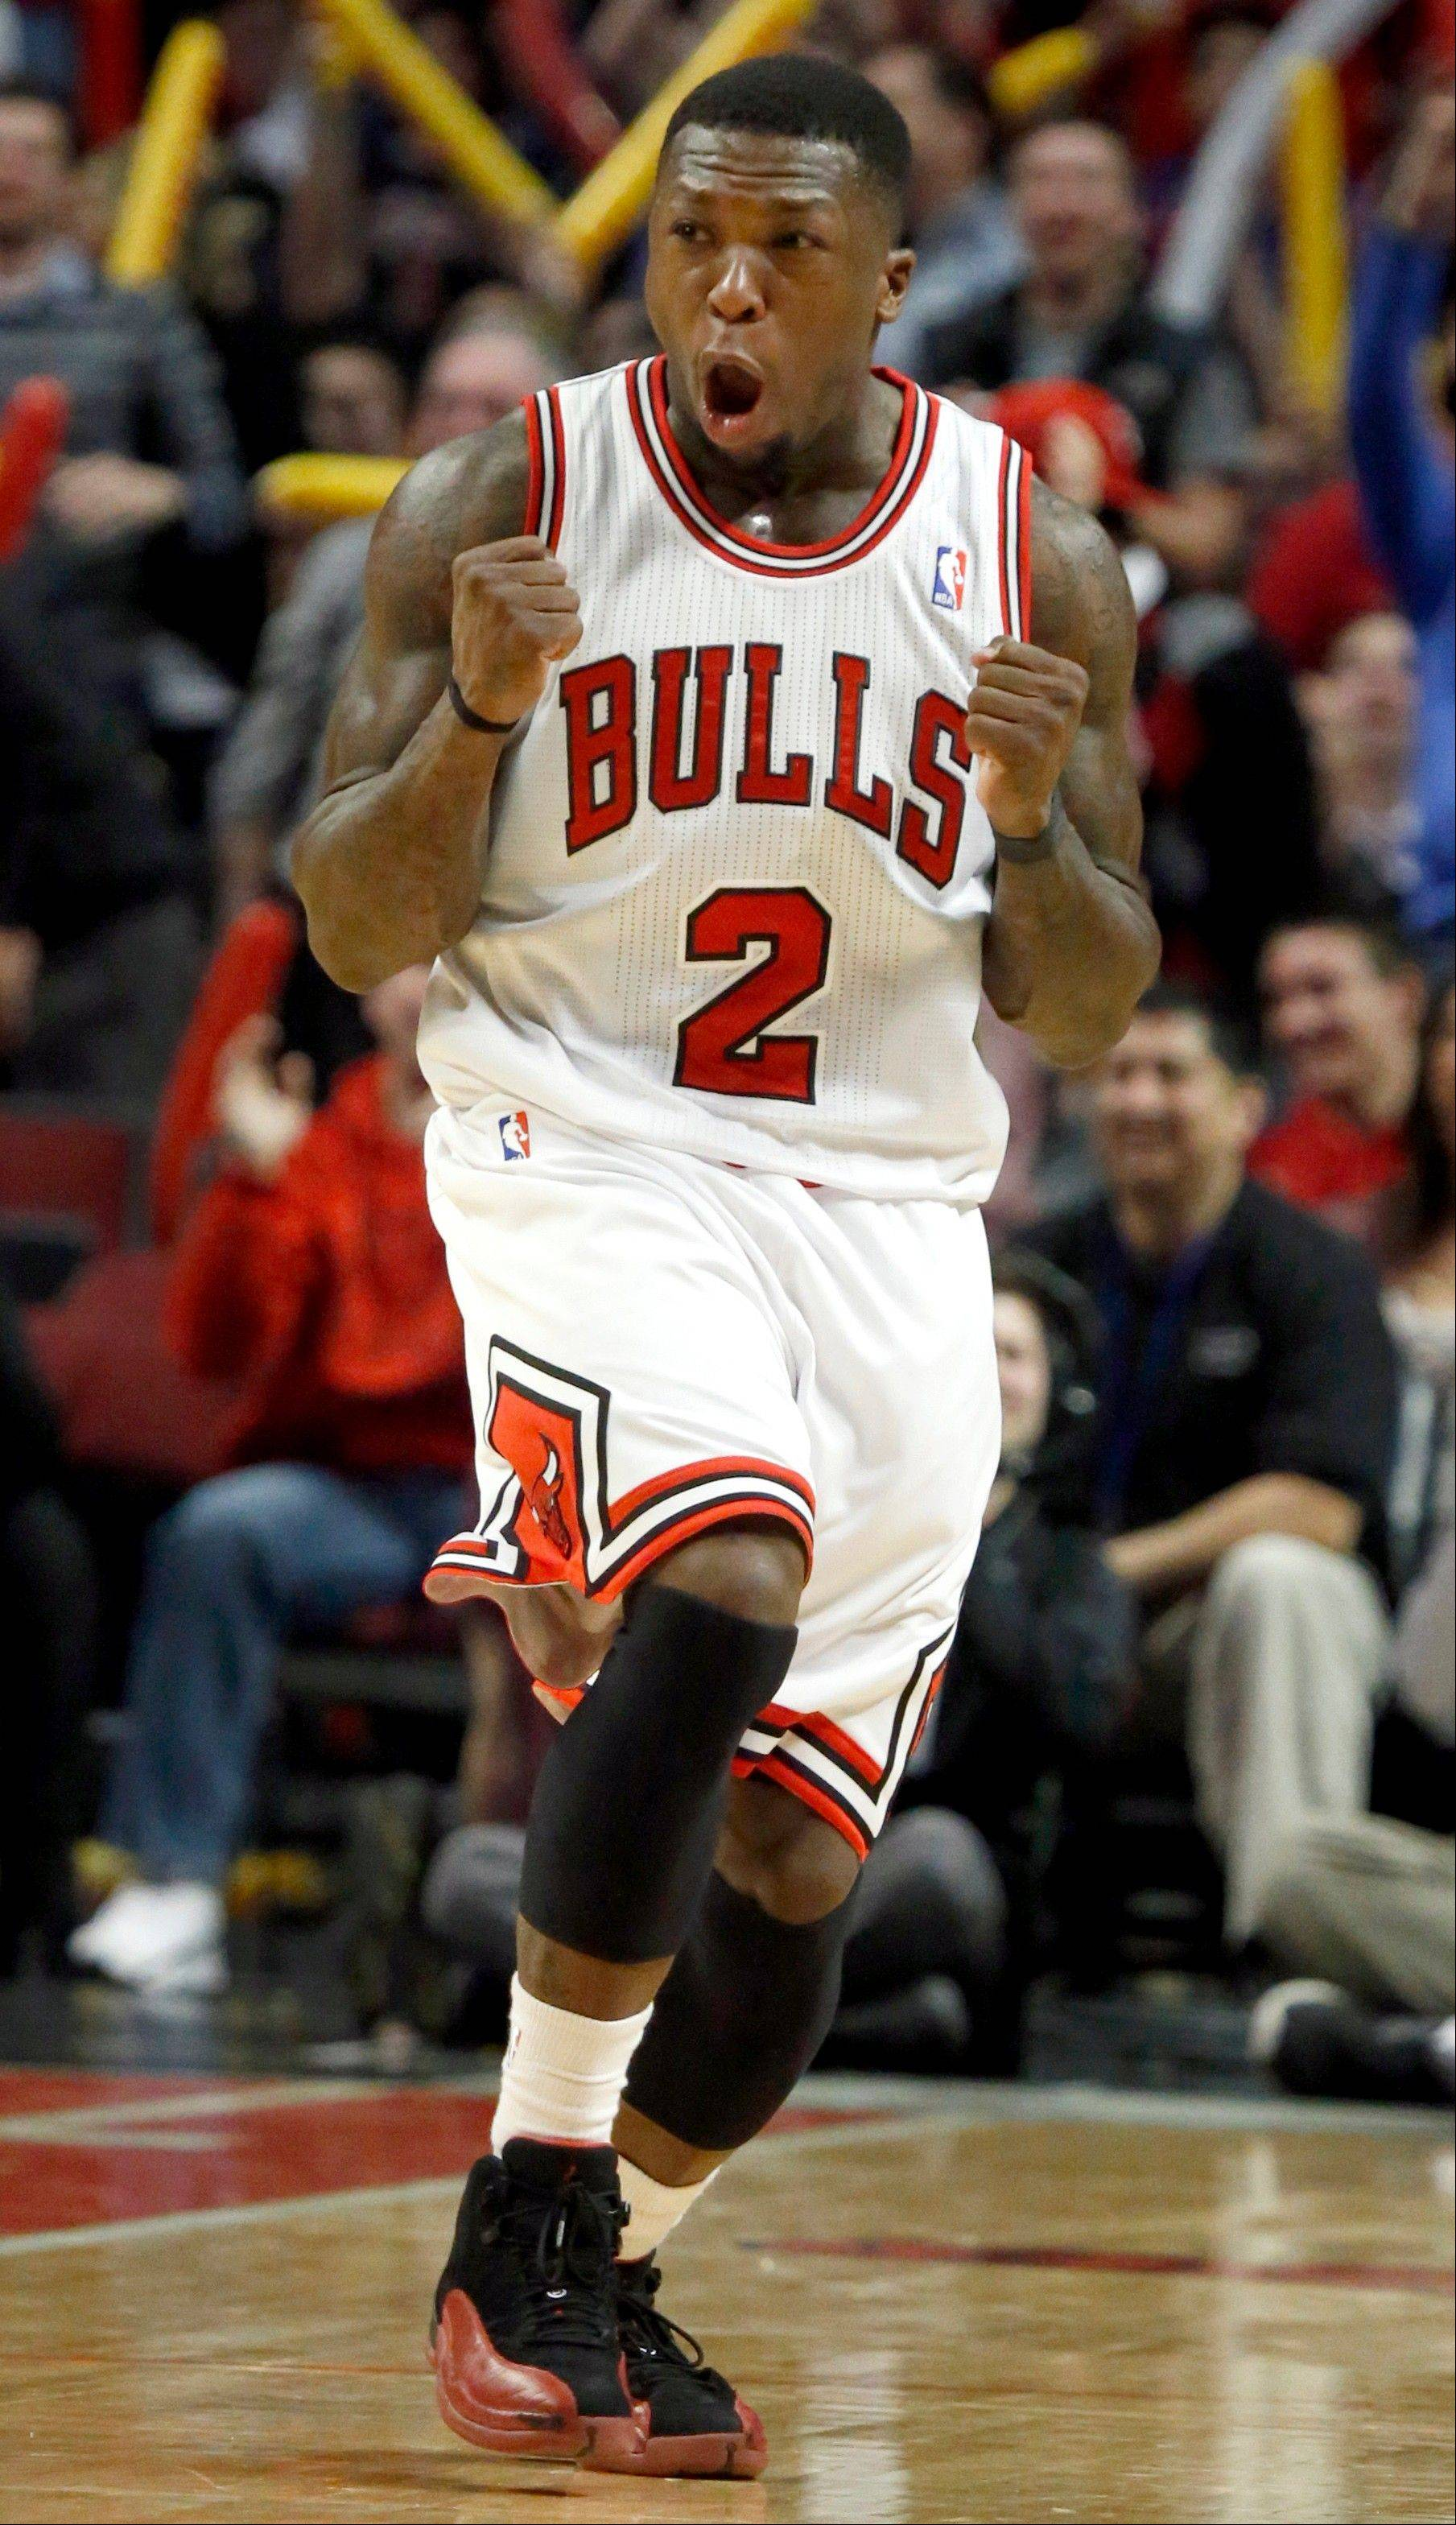 Bulls point guard Nate Robinson reacts to a win over the Detroit Pistons on Jan. 23 at the United Center.